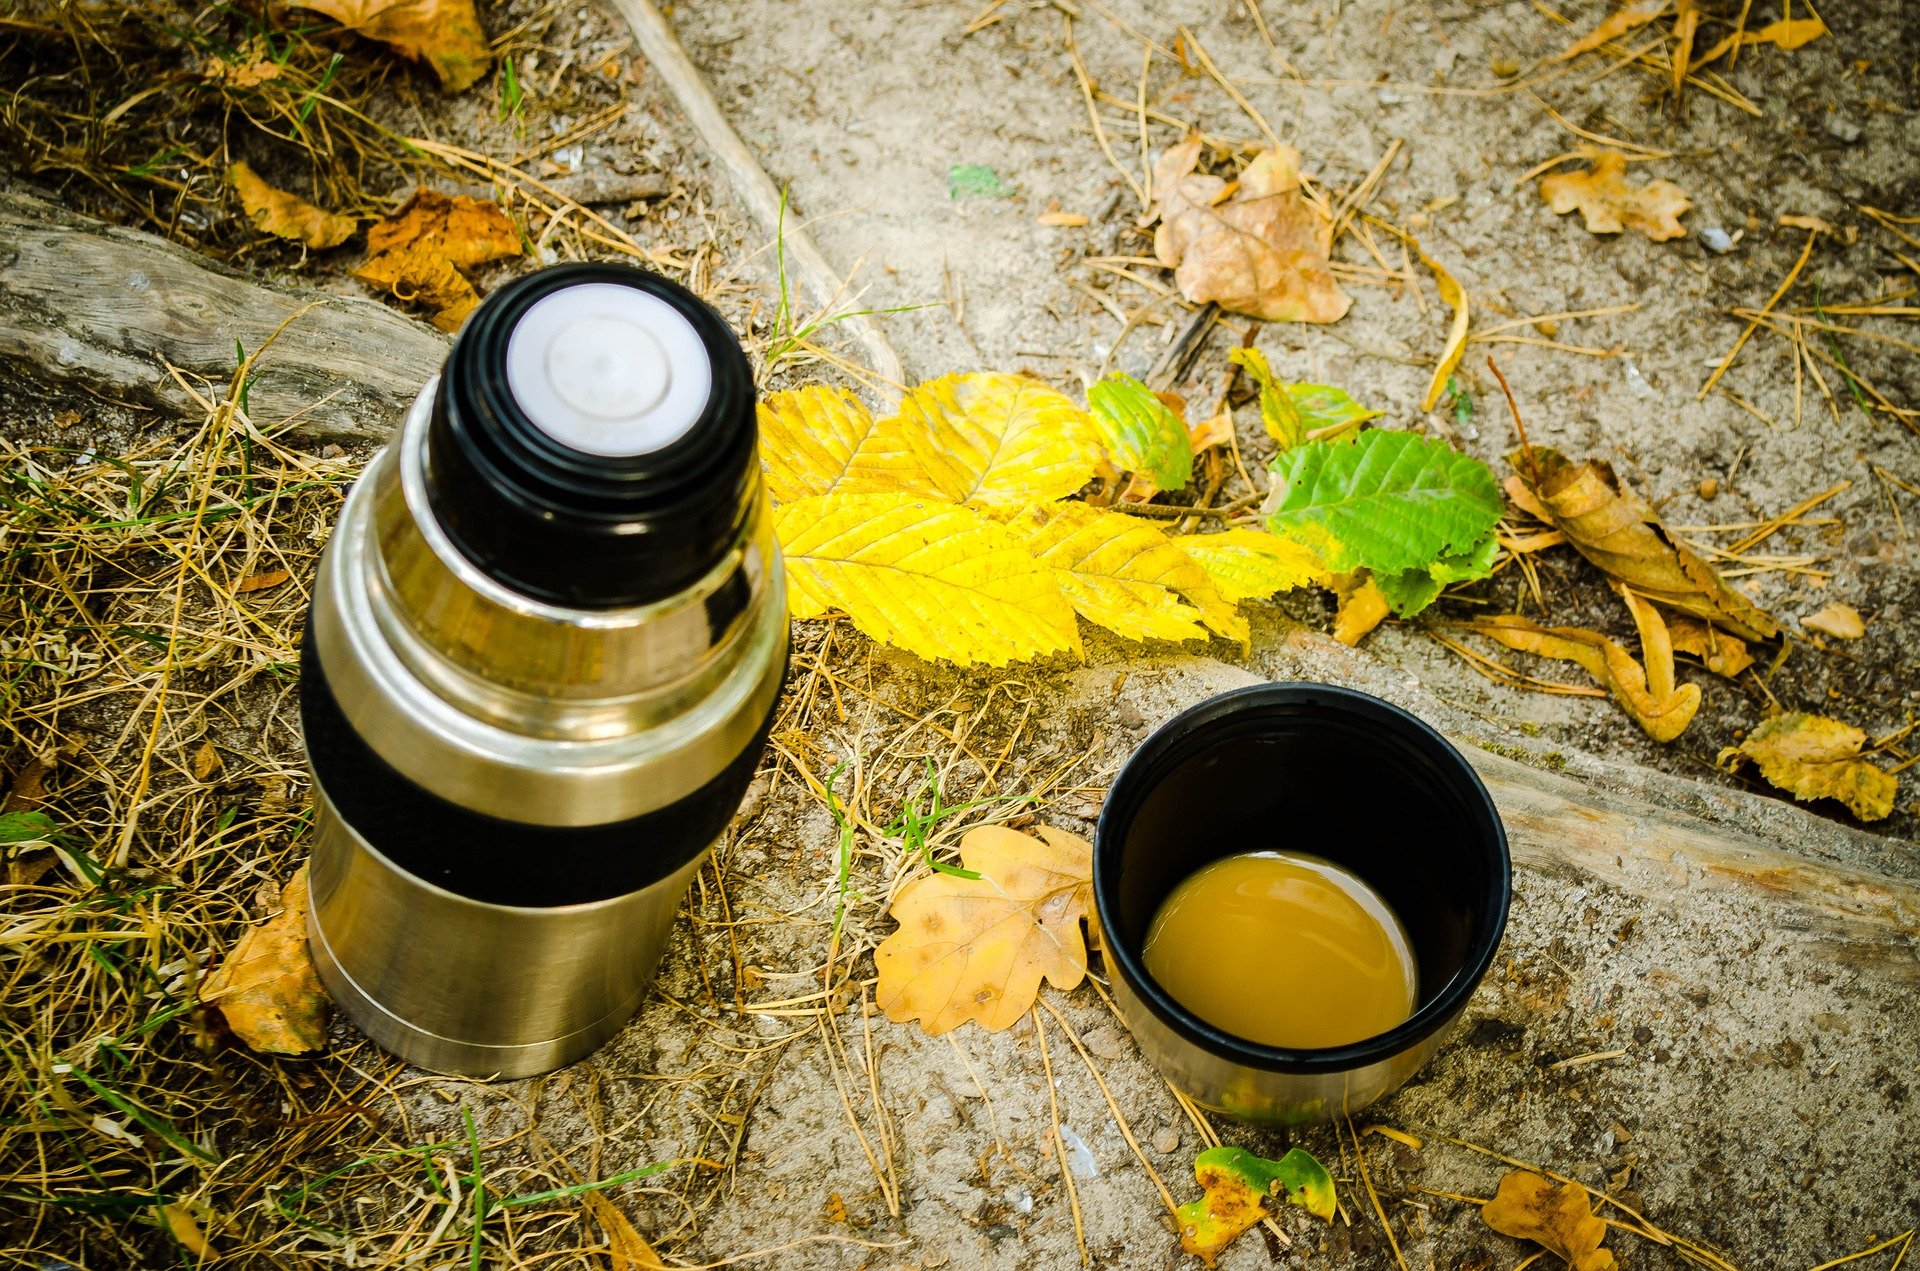 He thought a thermos flask was the best invention! | Photo: Pixabay/Юлия Мосийчук